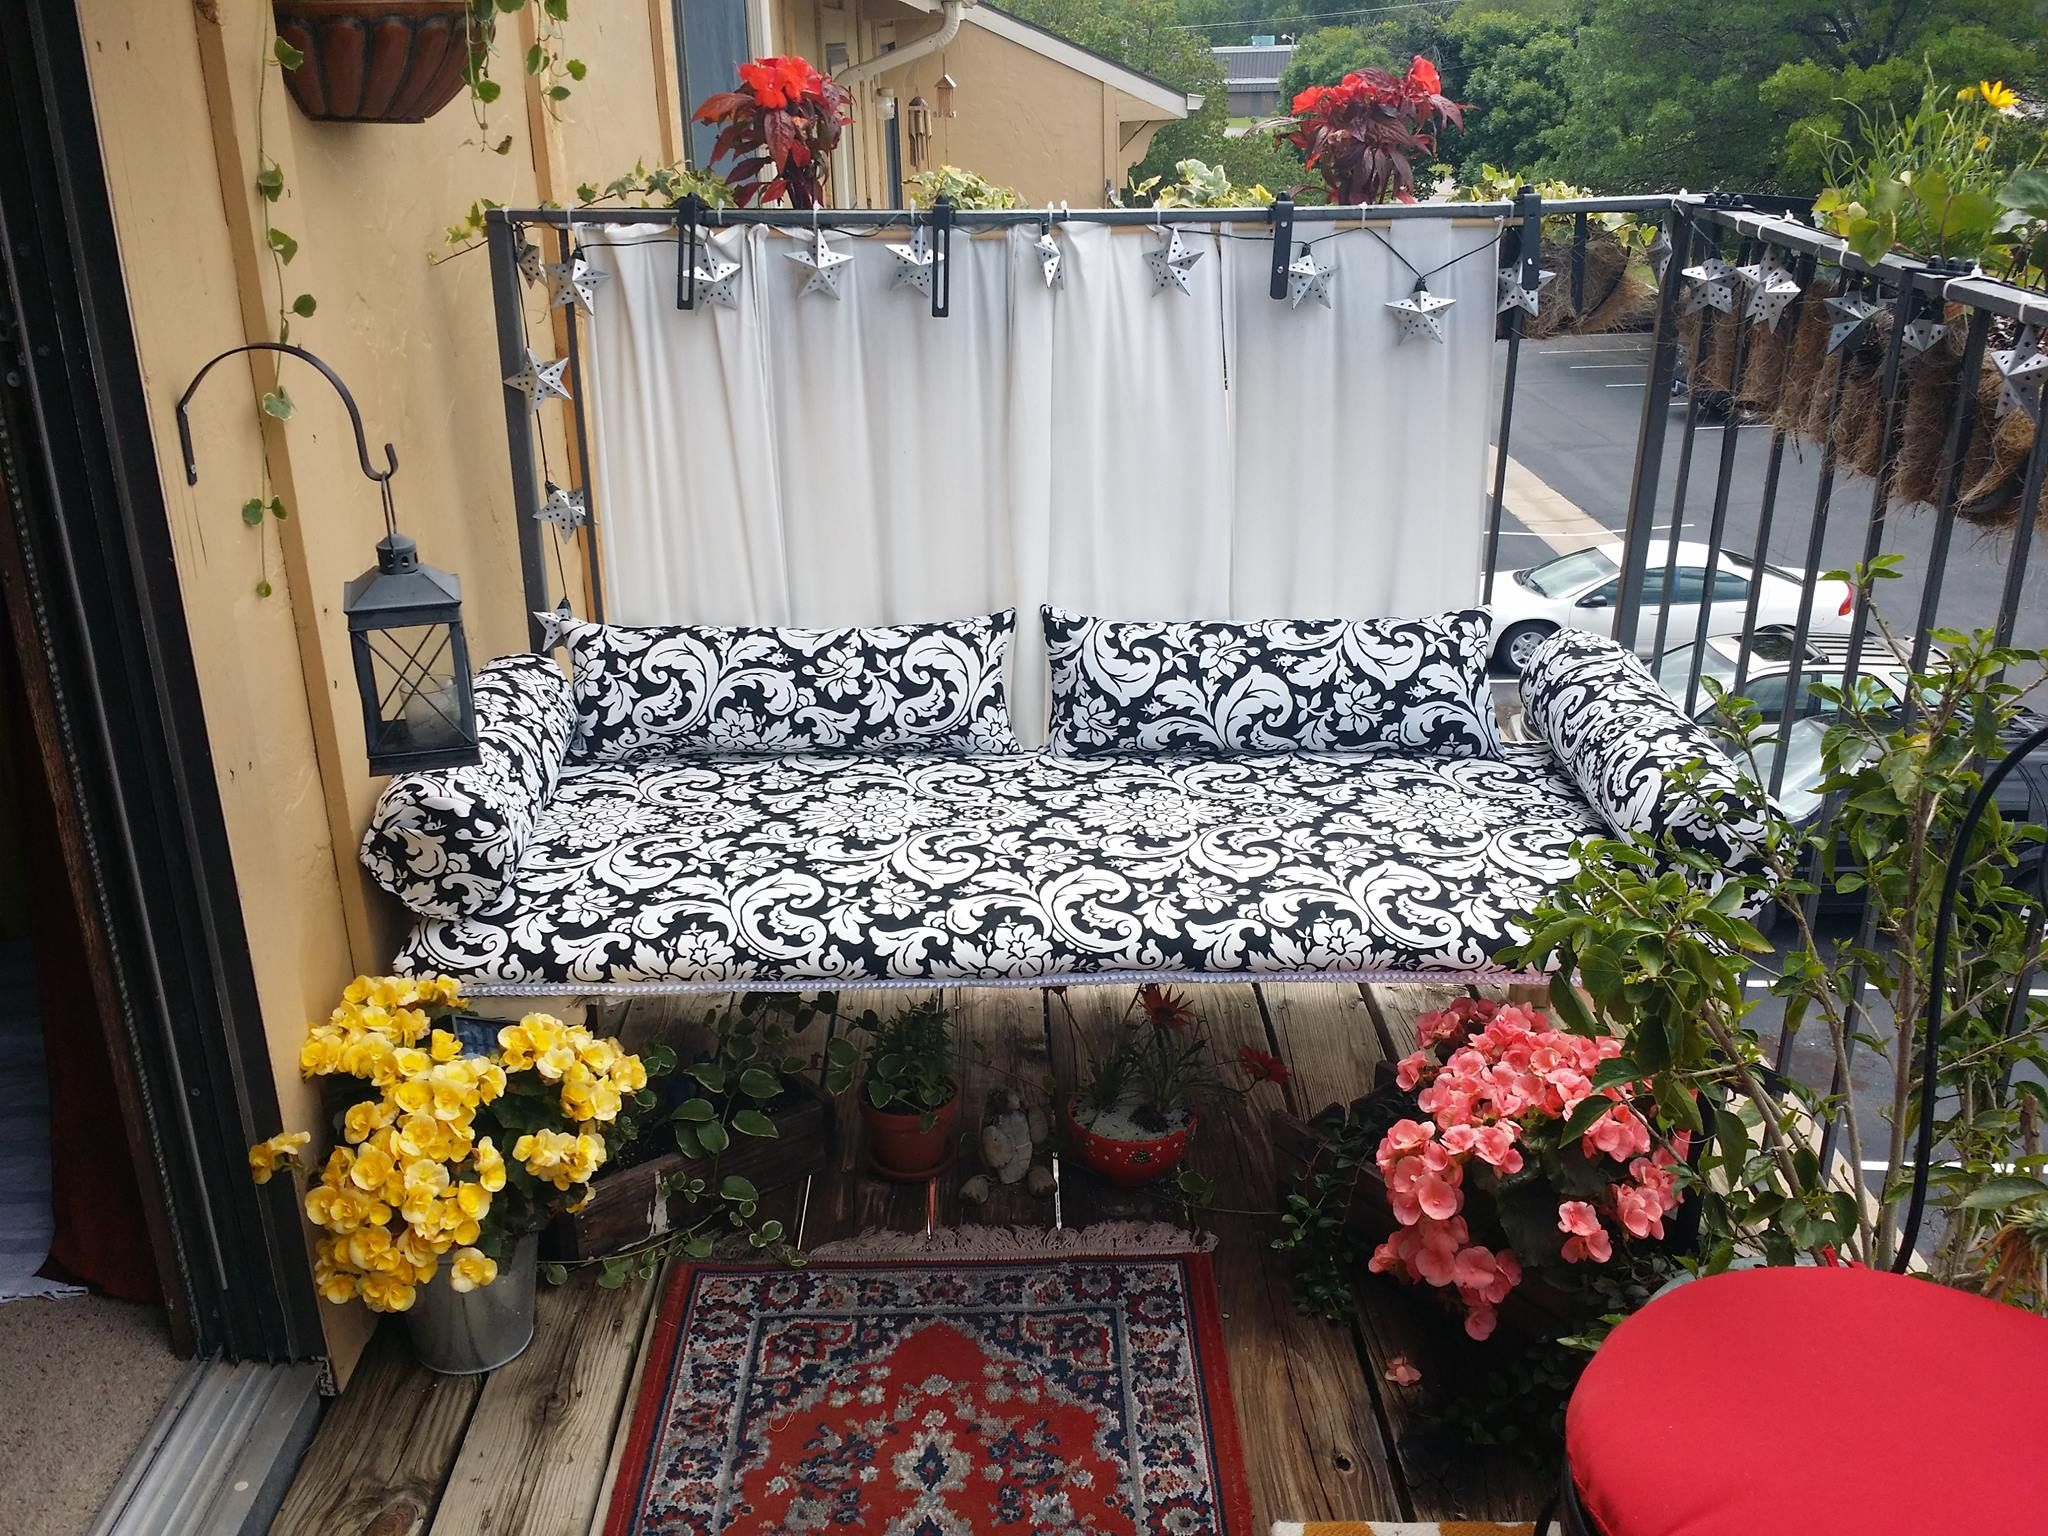 Small balcony ideas love this one by anda arms in kansas for Very small balcony ideas